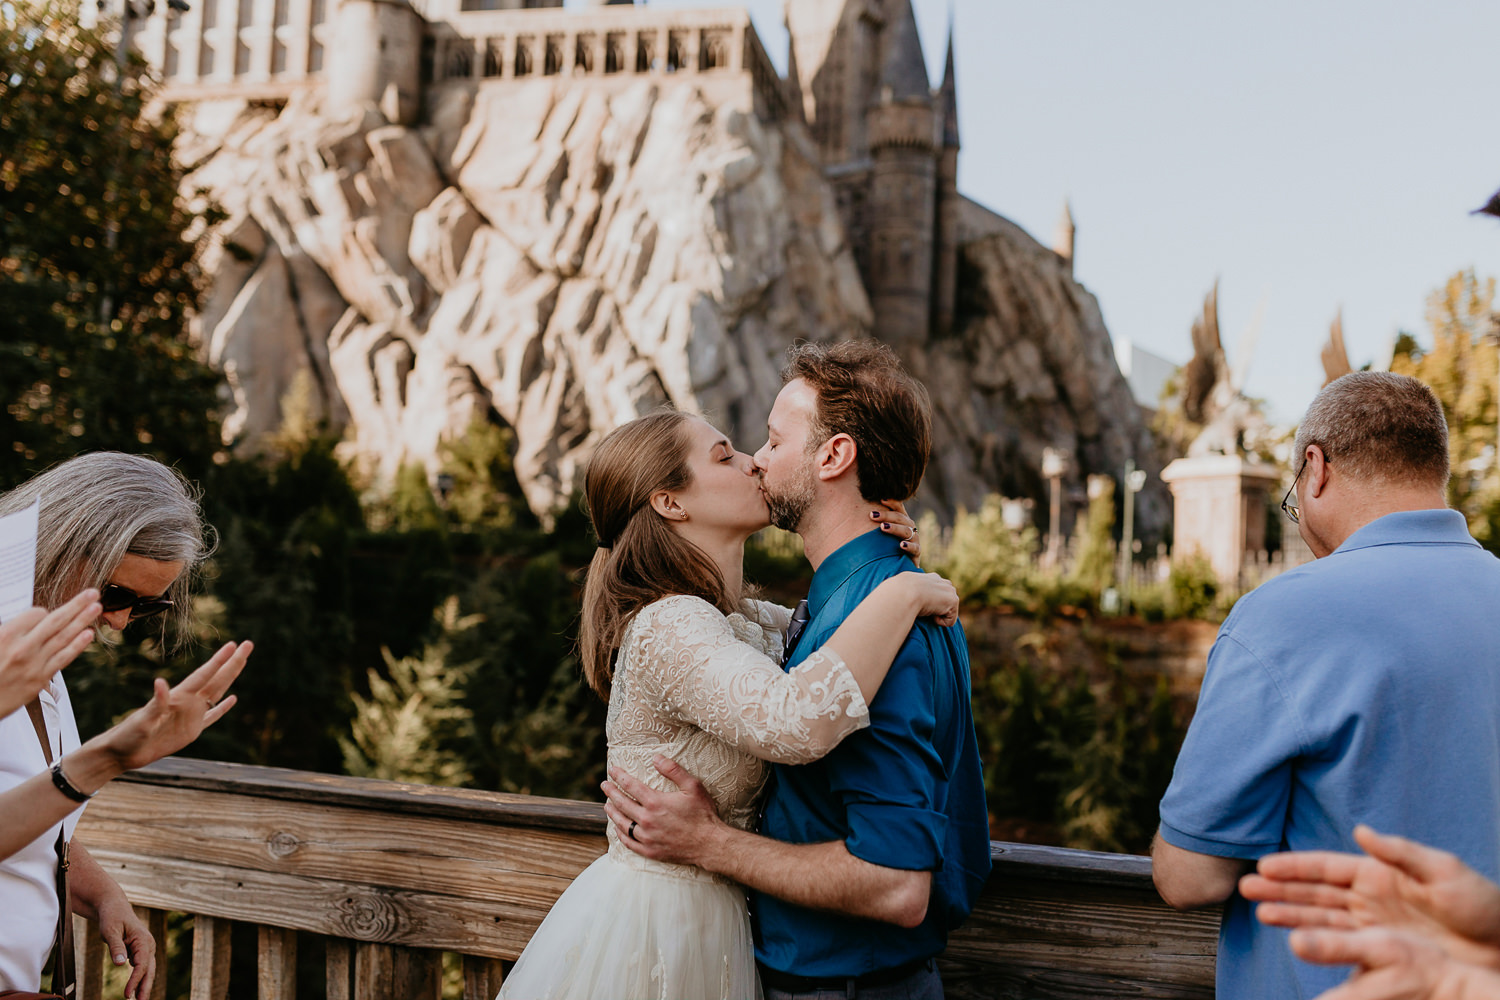 newlyweds first kiss on universal studios bridge with hogwarts castle in the background